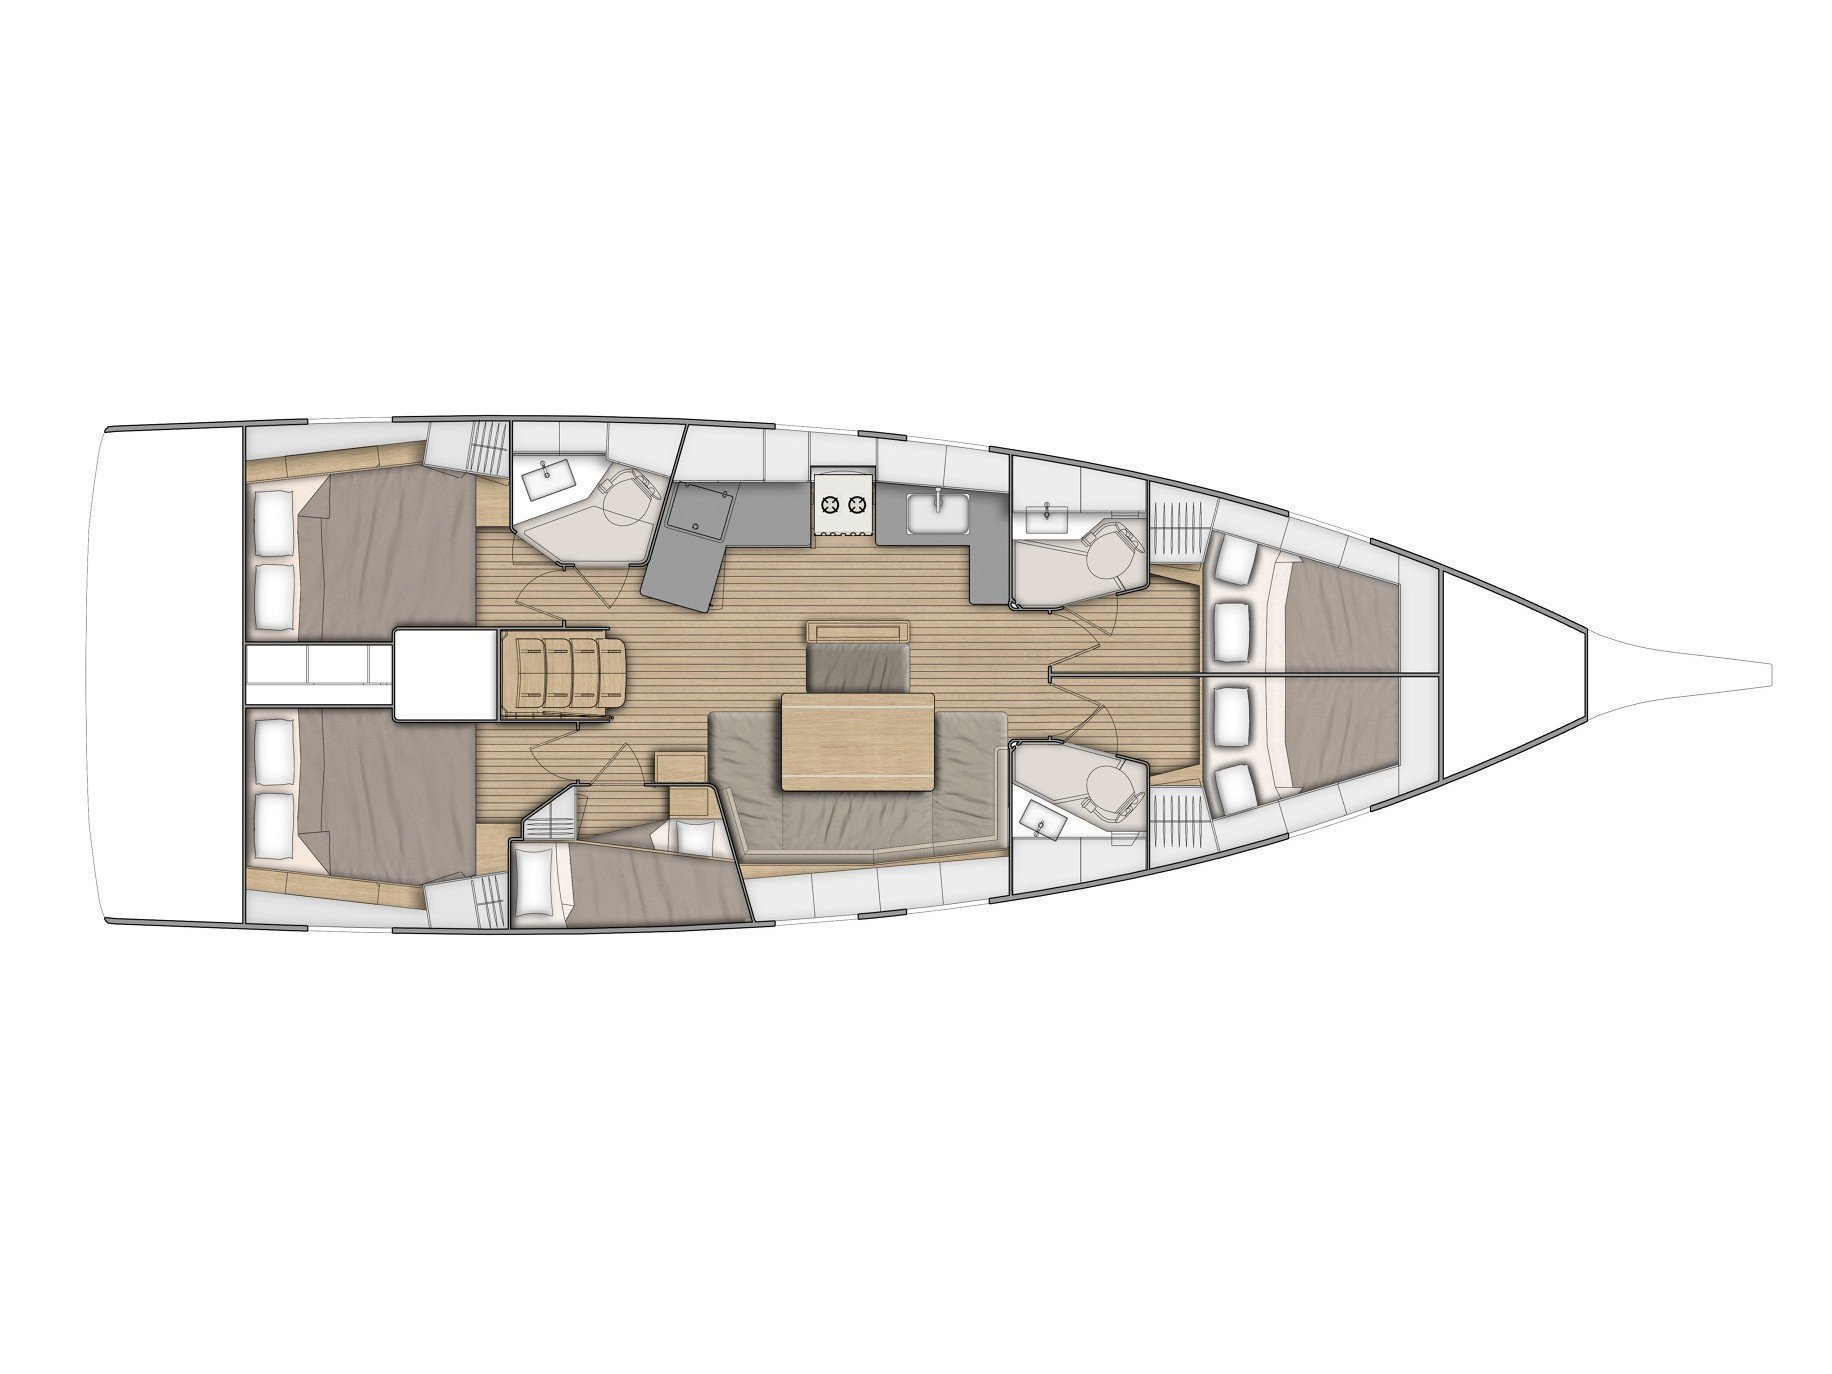 Oceanis 46.1 (SEA YA-with AC) Plan image - 16